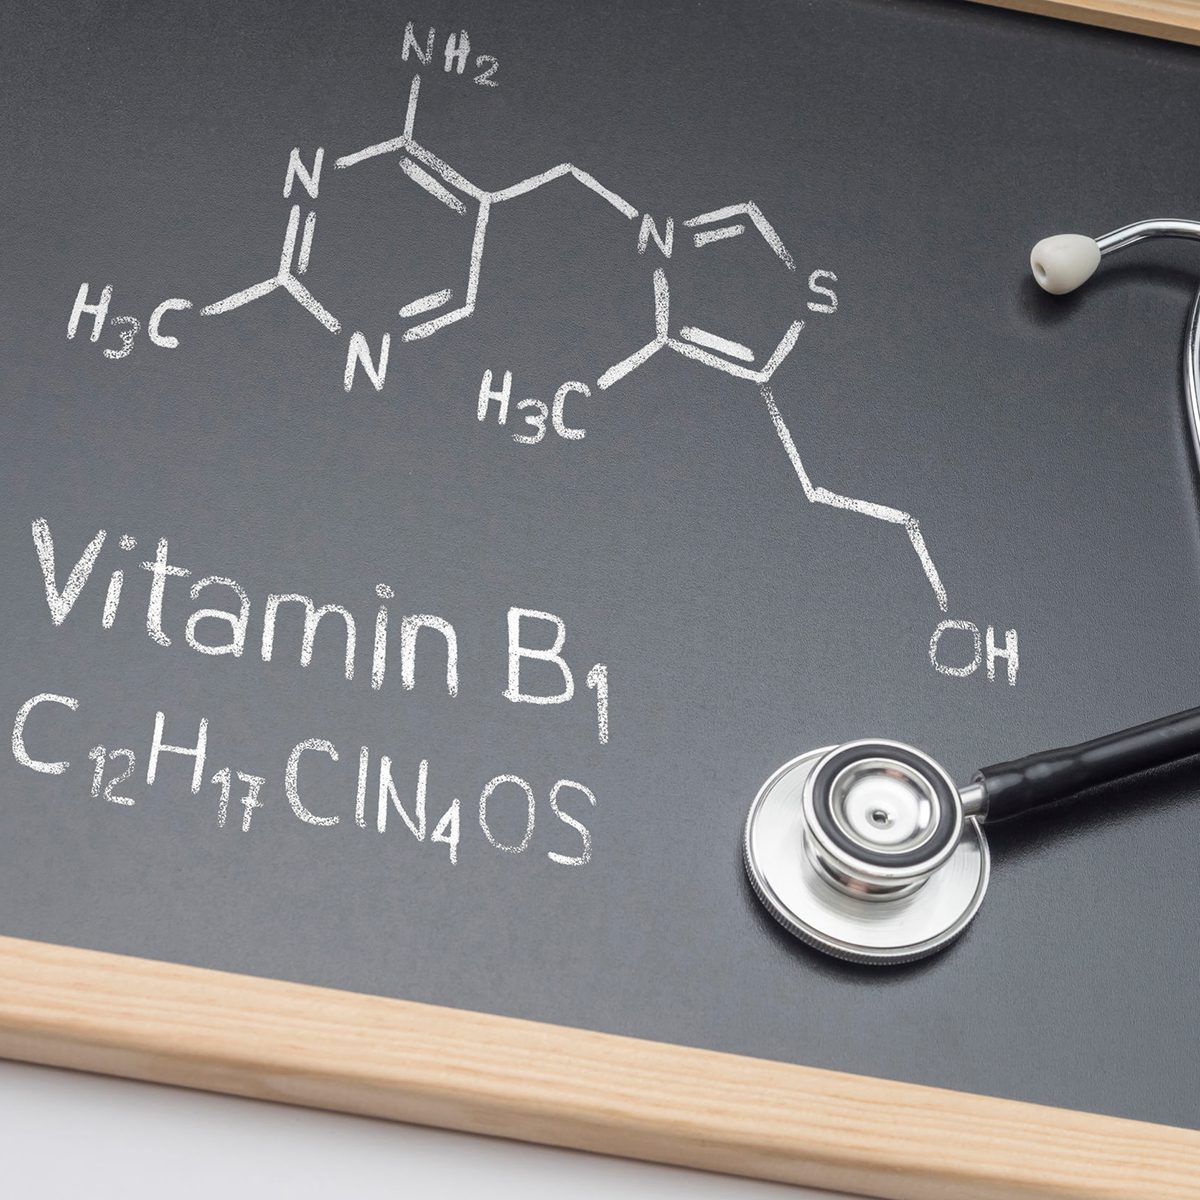 Thiamin (Vitamin B1) Deficiency Before and After Bariatric Surgery